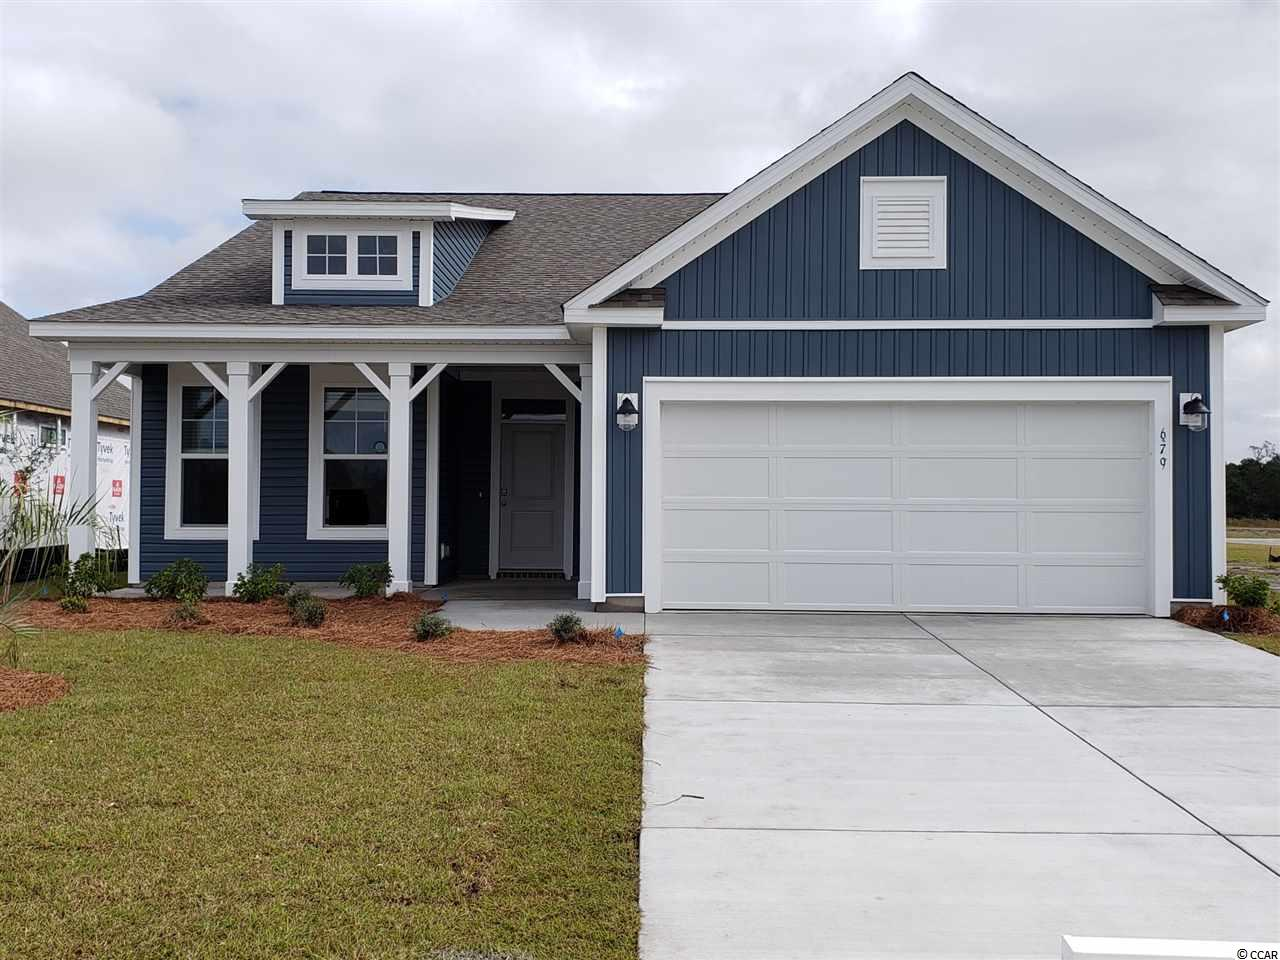 Pictures shown are from a previously built home. Laurel floorplan featuring one-story living with 4 bedrooms, 2.5 bathrooms, and 2-car garage space.